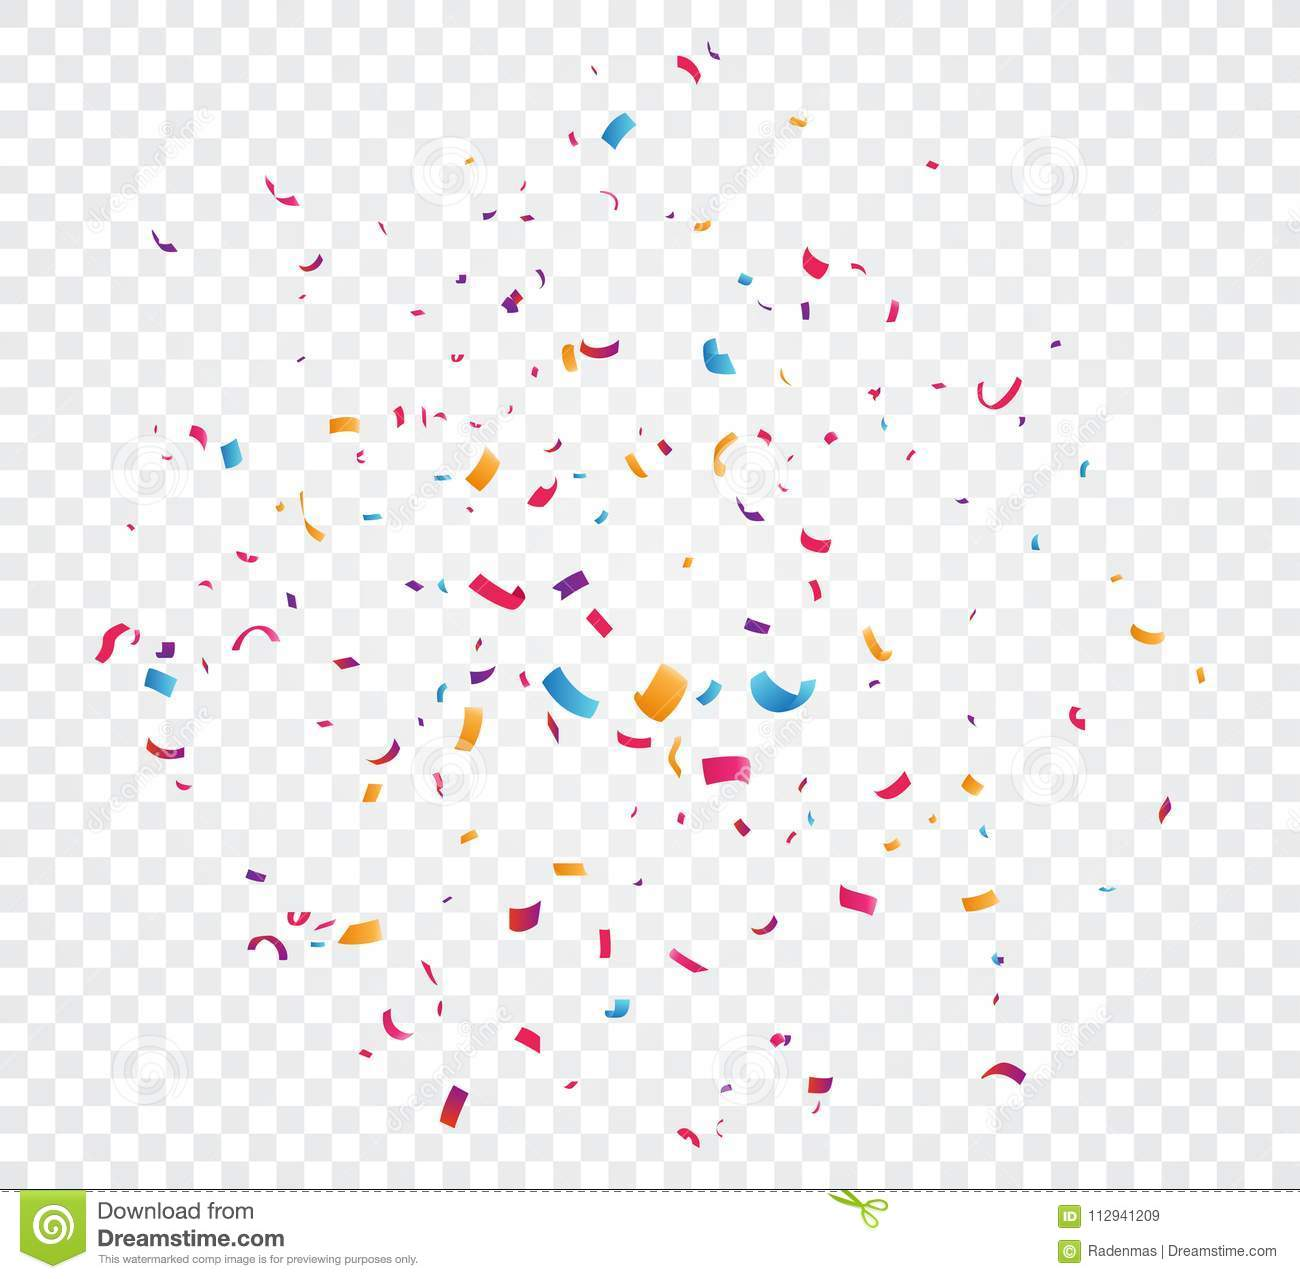 Colorful Confetti Explosion Isolated On Transparent Background Stock Vector Illustration Of Celebration Falling 112941209